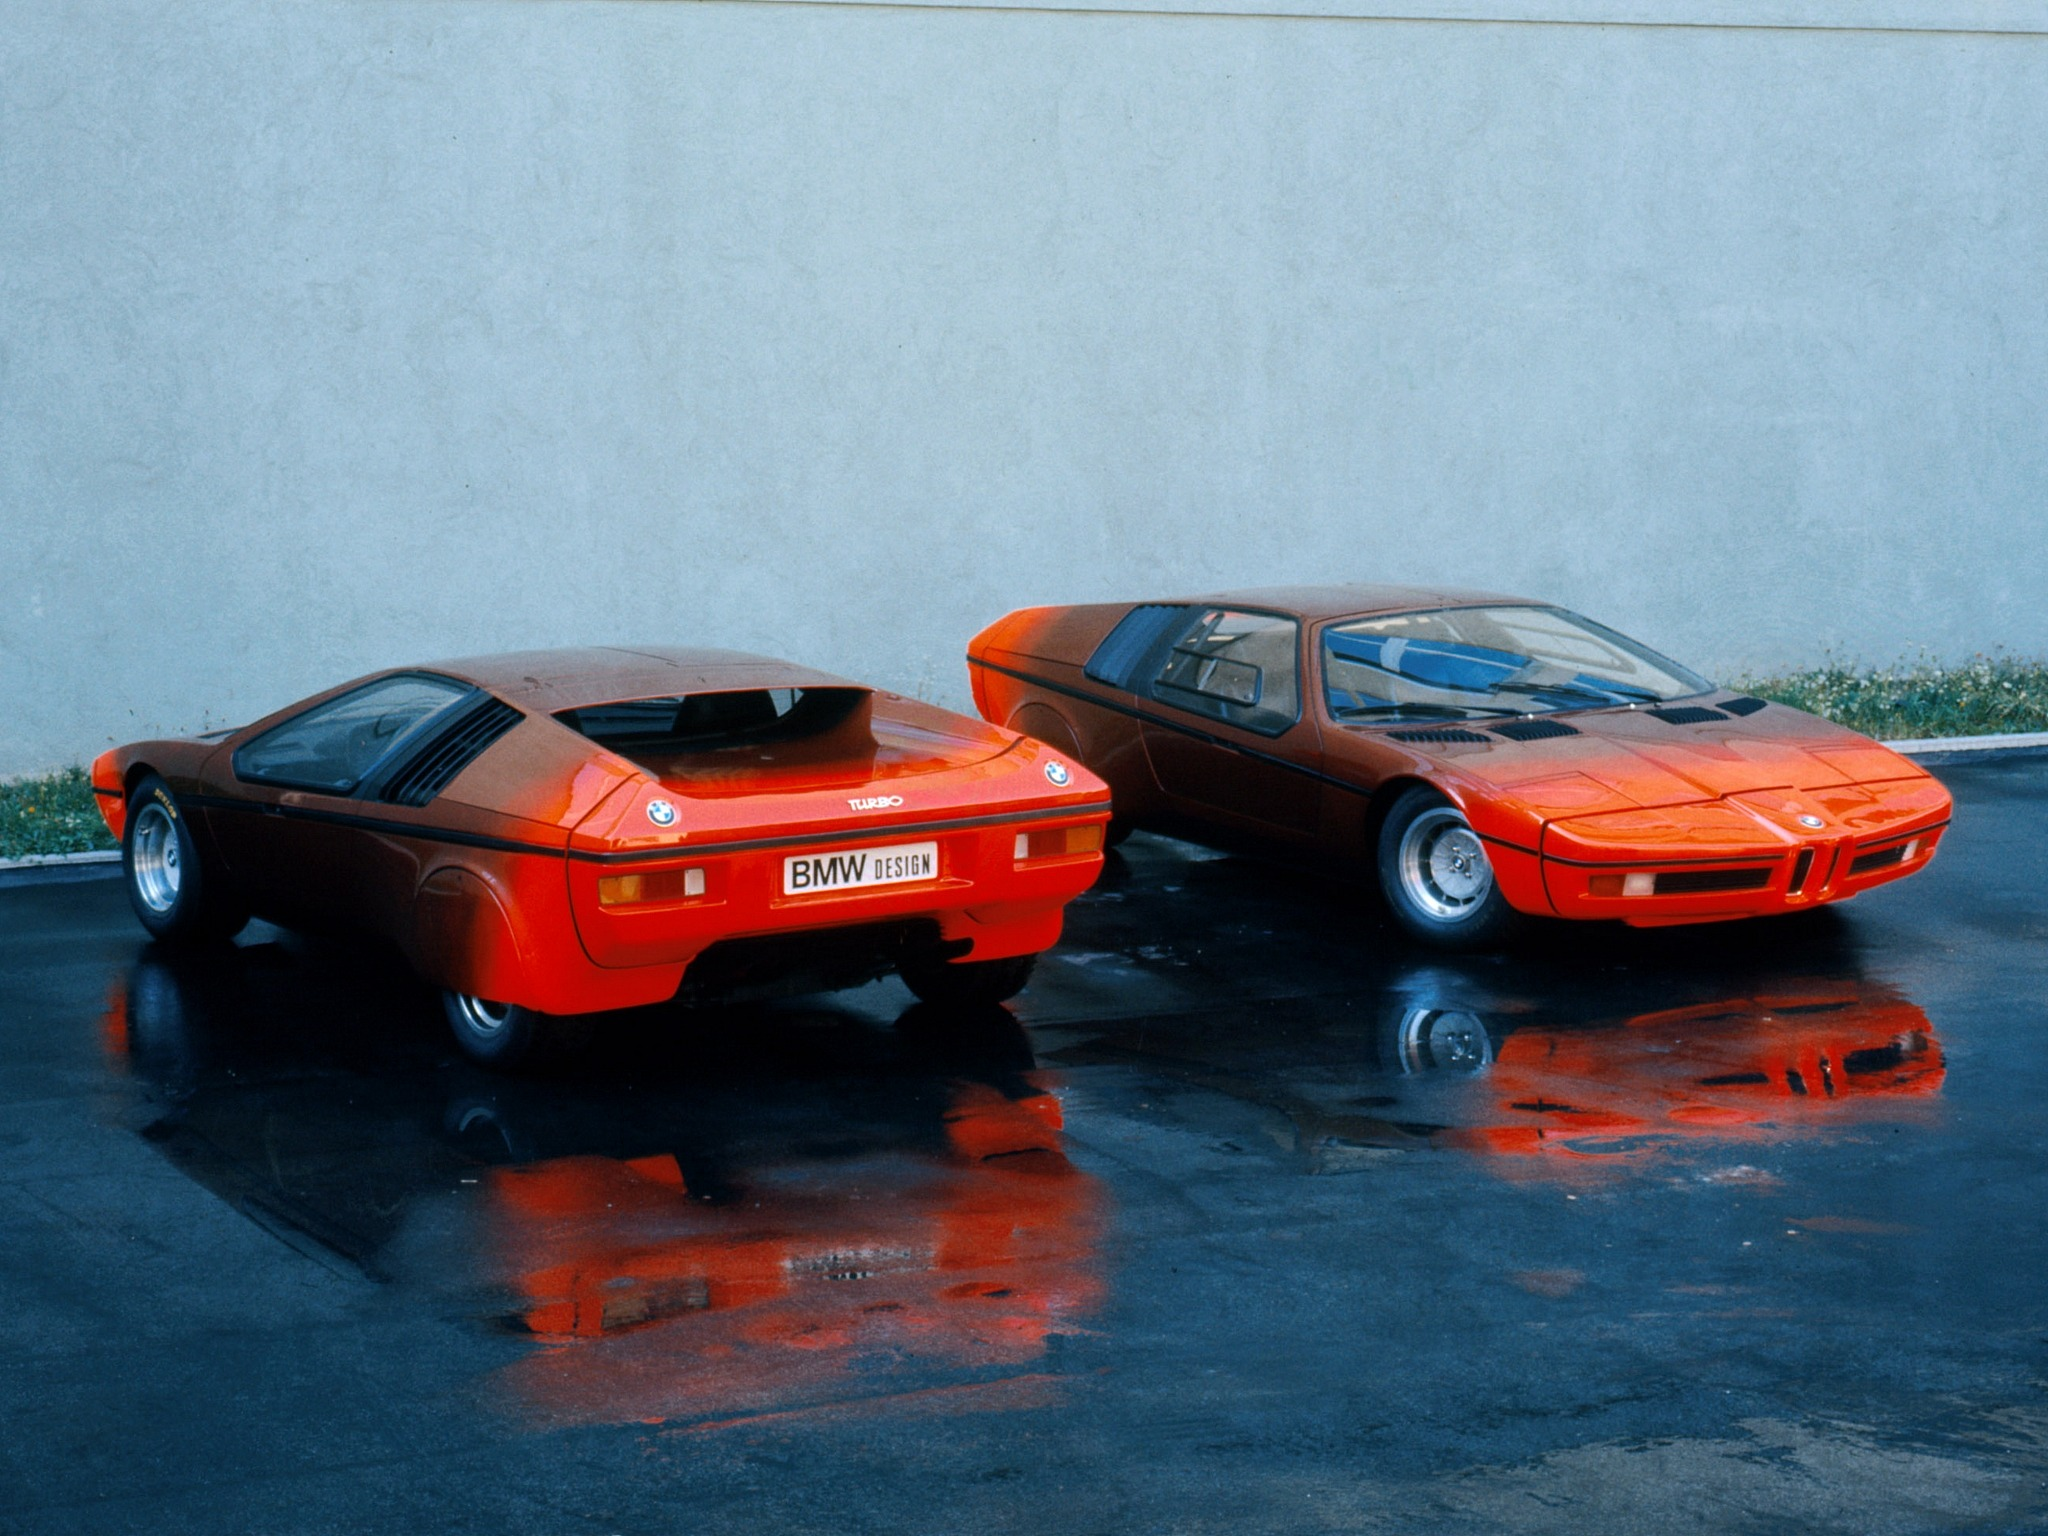 BMW Concept Cars: 1972 BMW Turbo - BMW Discussion - WI BIMMERS ...